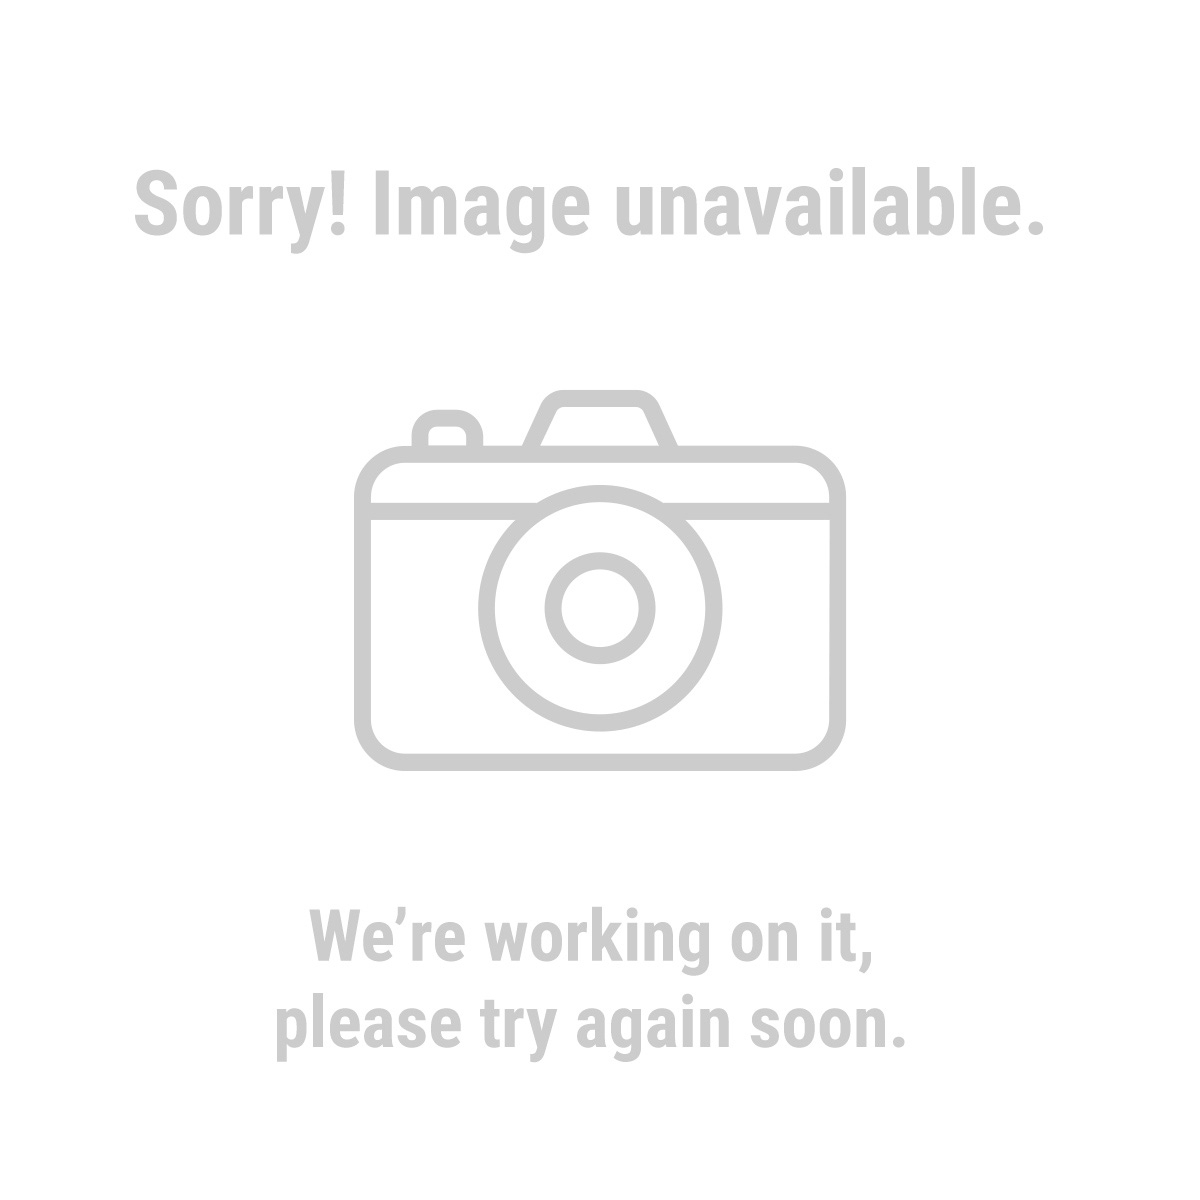 "Haul-Master 97214 3-Point Quick Hitch - 27-1/2"" Clearance"